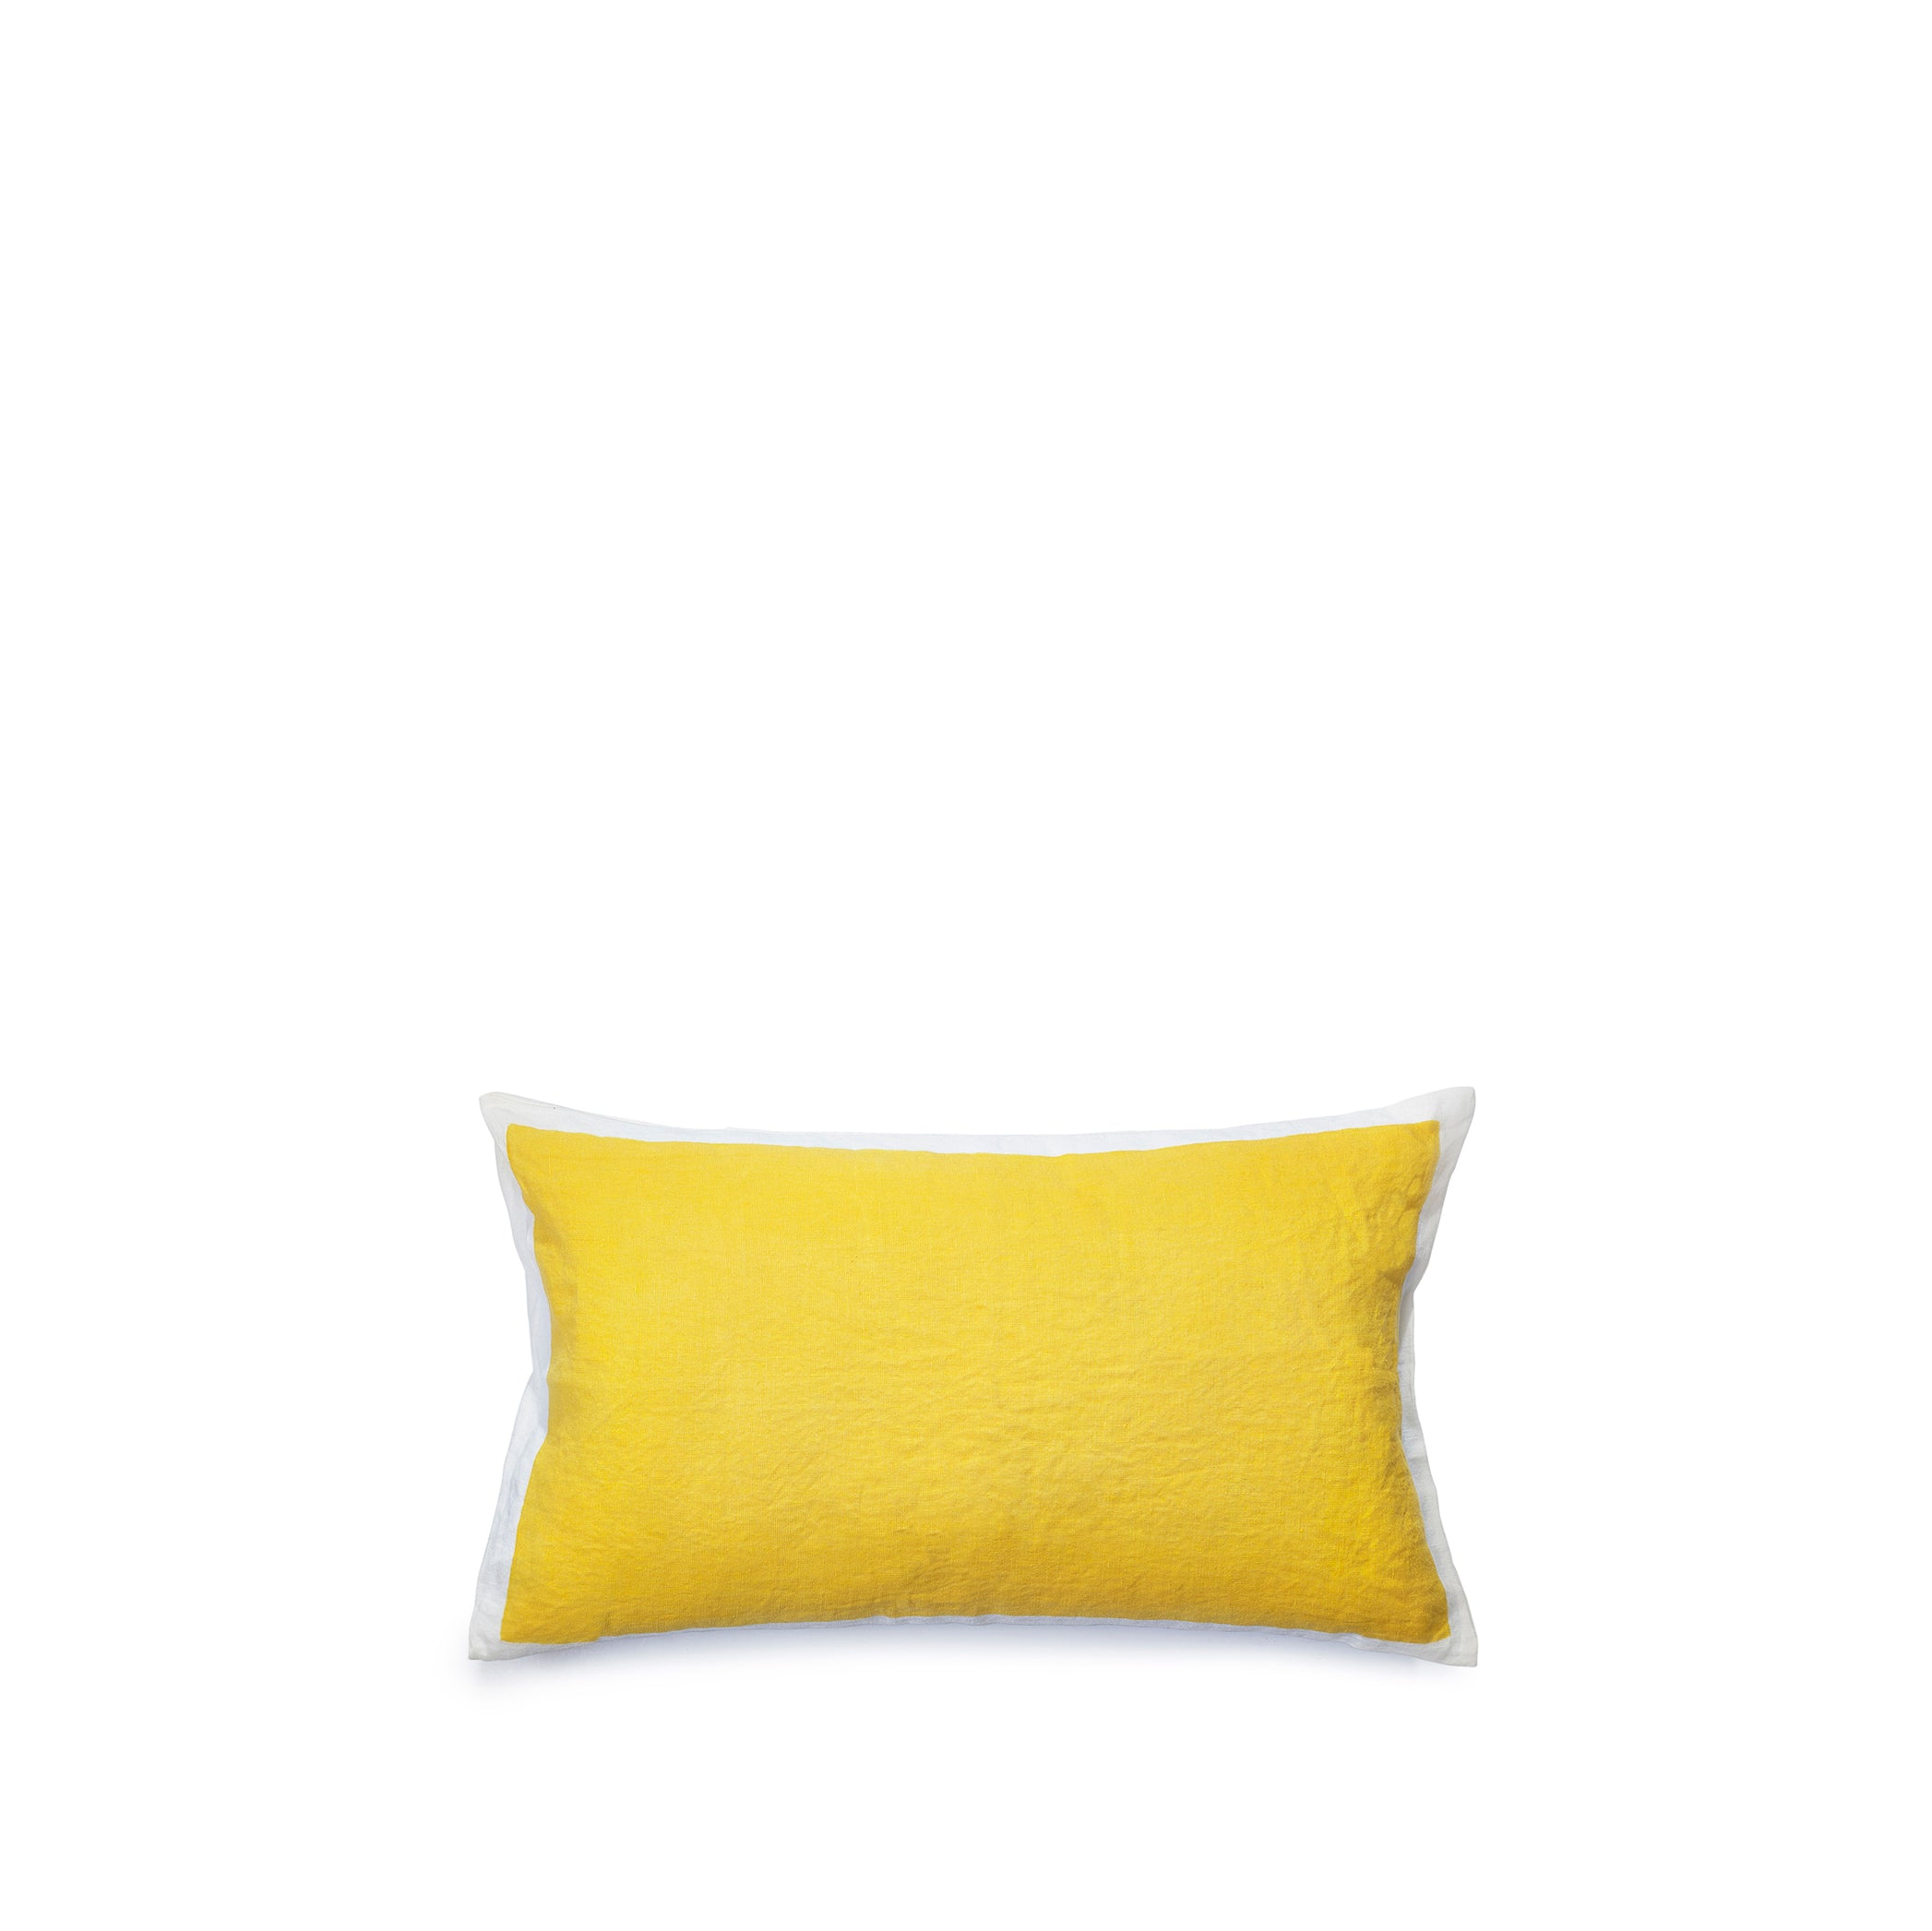 Hand Painted Linen Cushion in Lemon Yellow, 50cm x 30cm